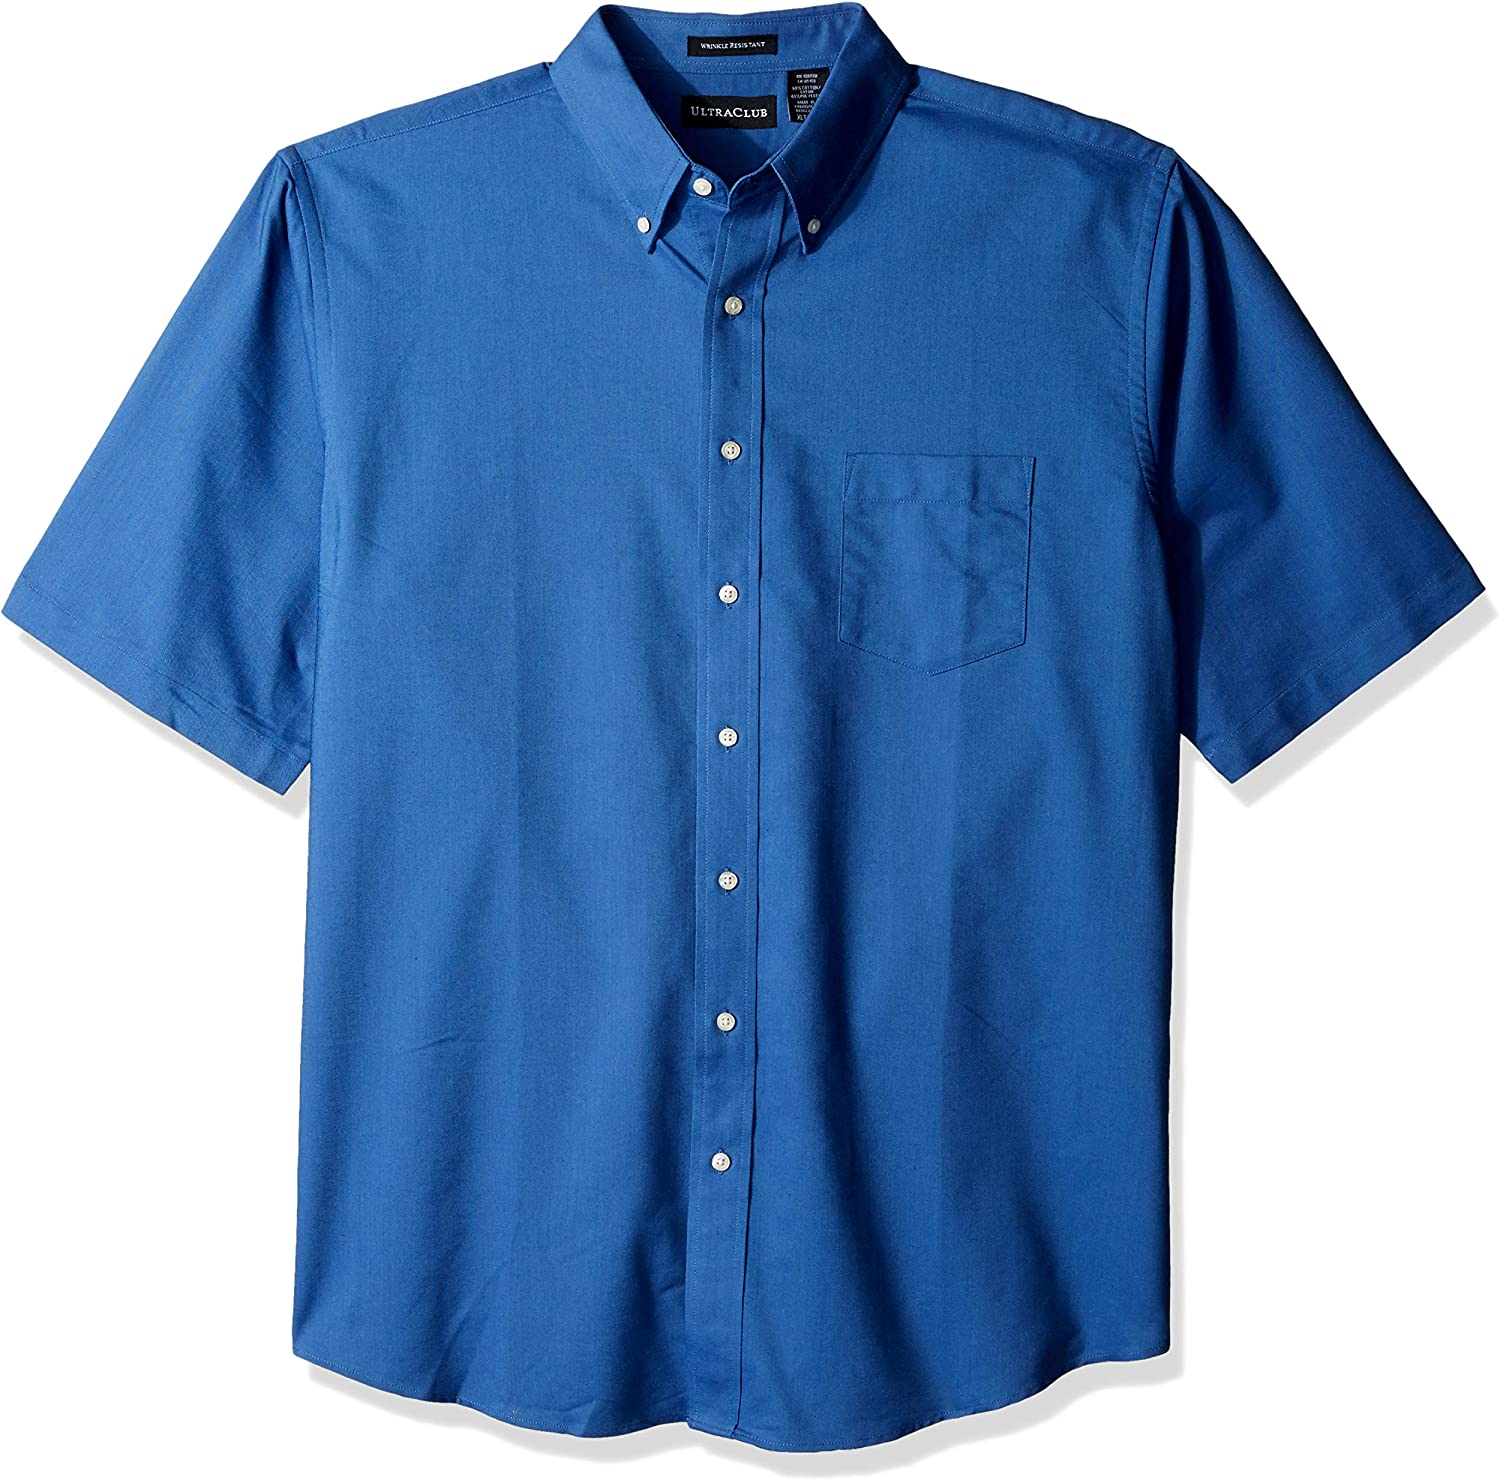 Clementine Men's Ultc-8972t-tall Classic Wrinkle-Free Short-Sleeve Oxford